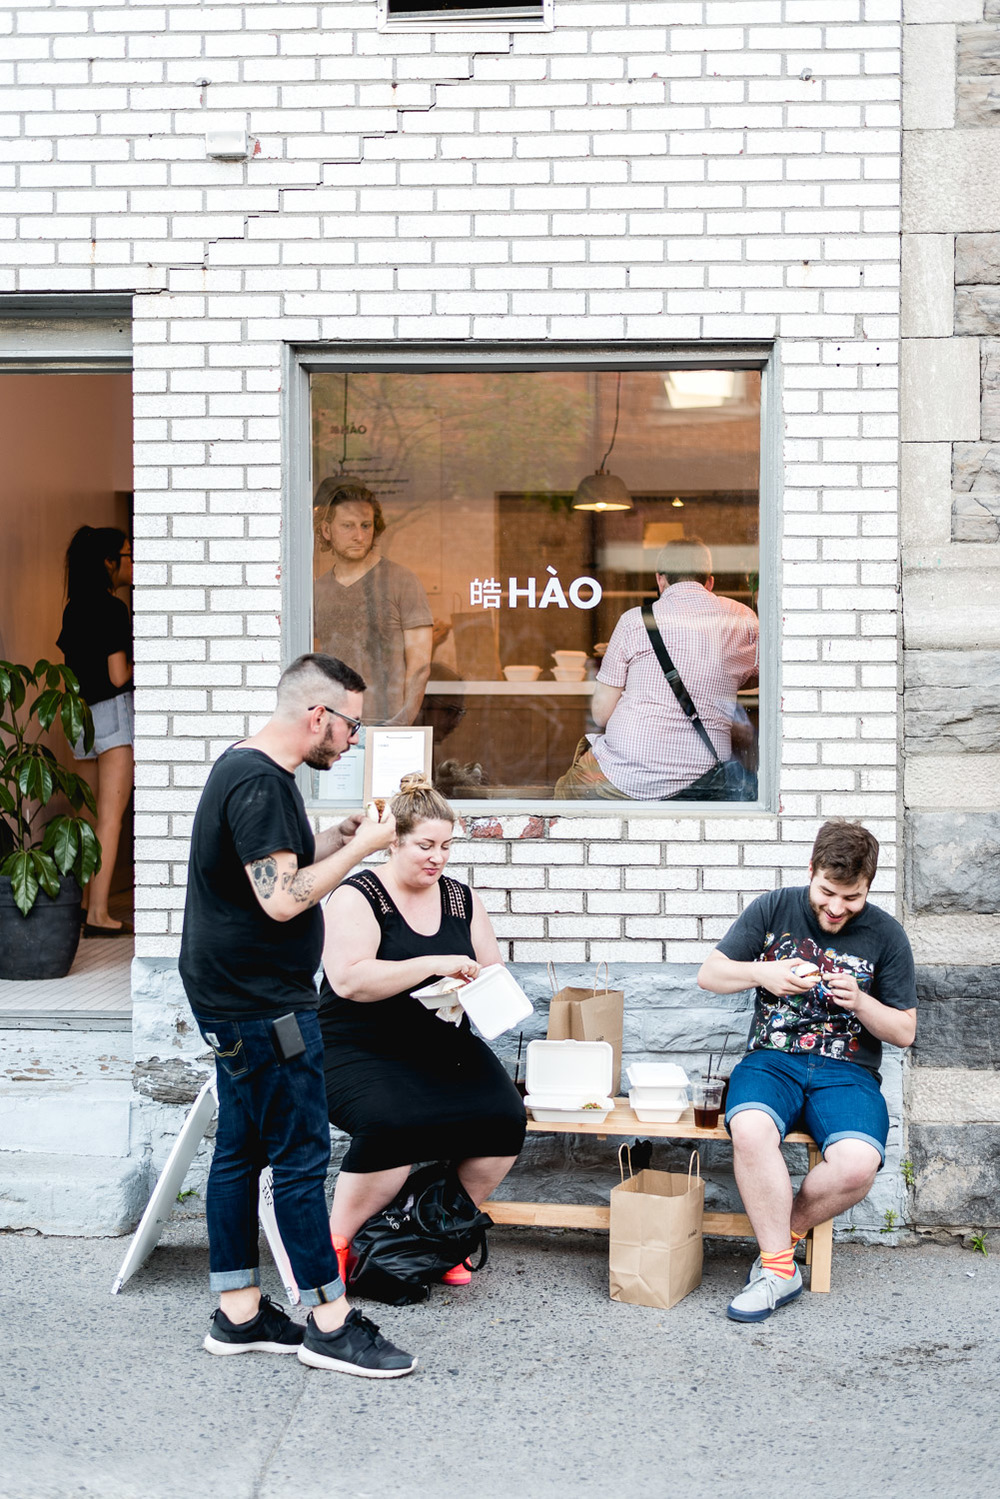 Epicerie HAO - Best steamed buns in Montreal